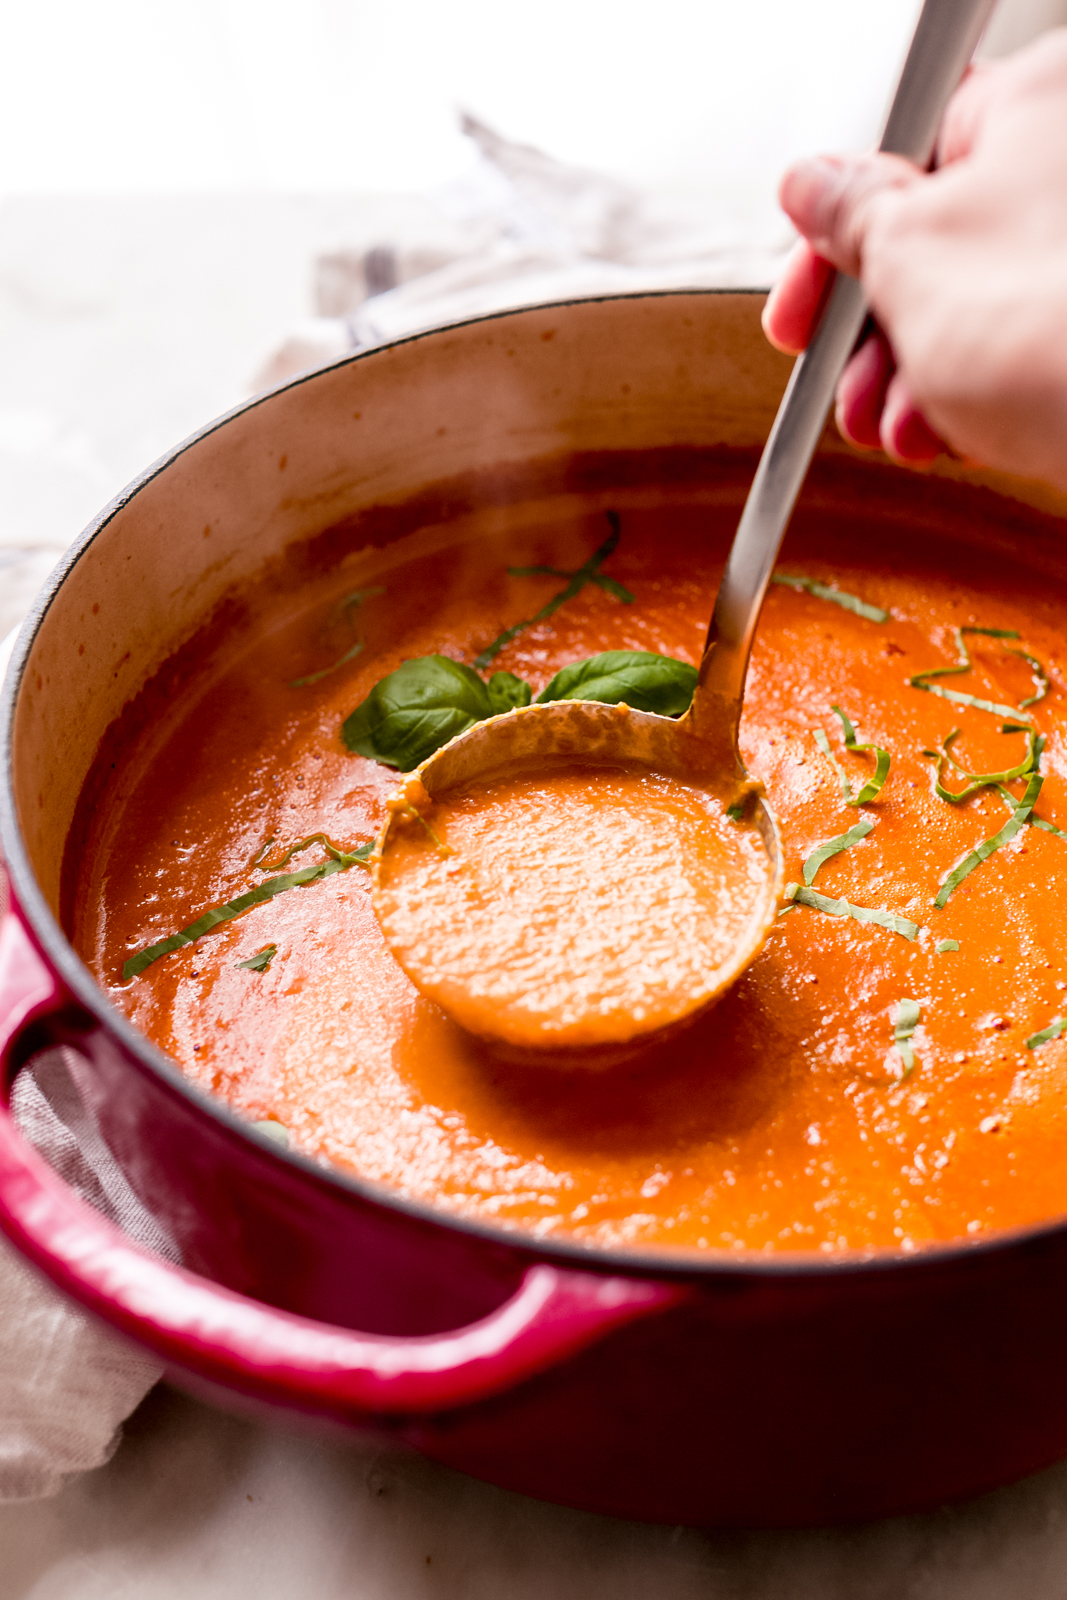 steaming pot of tomato basil soup with a hand lifting a ladleful